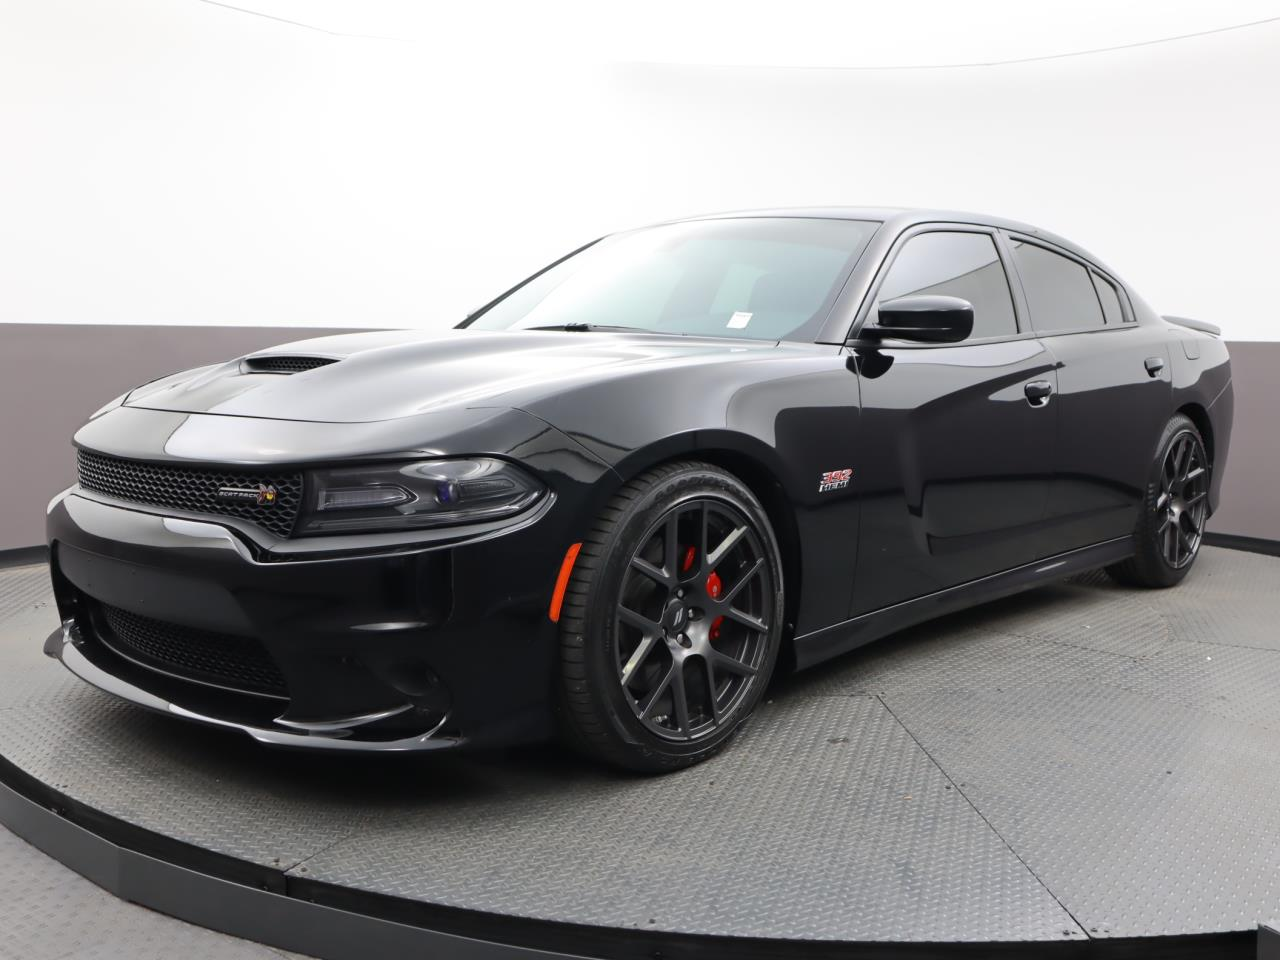 Used DODGE CHARGER 2017 MIAMI R/T SCAT PACK